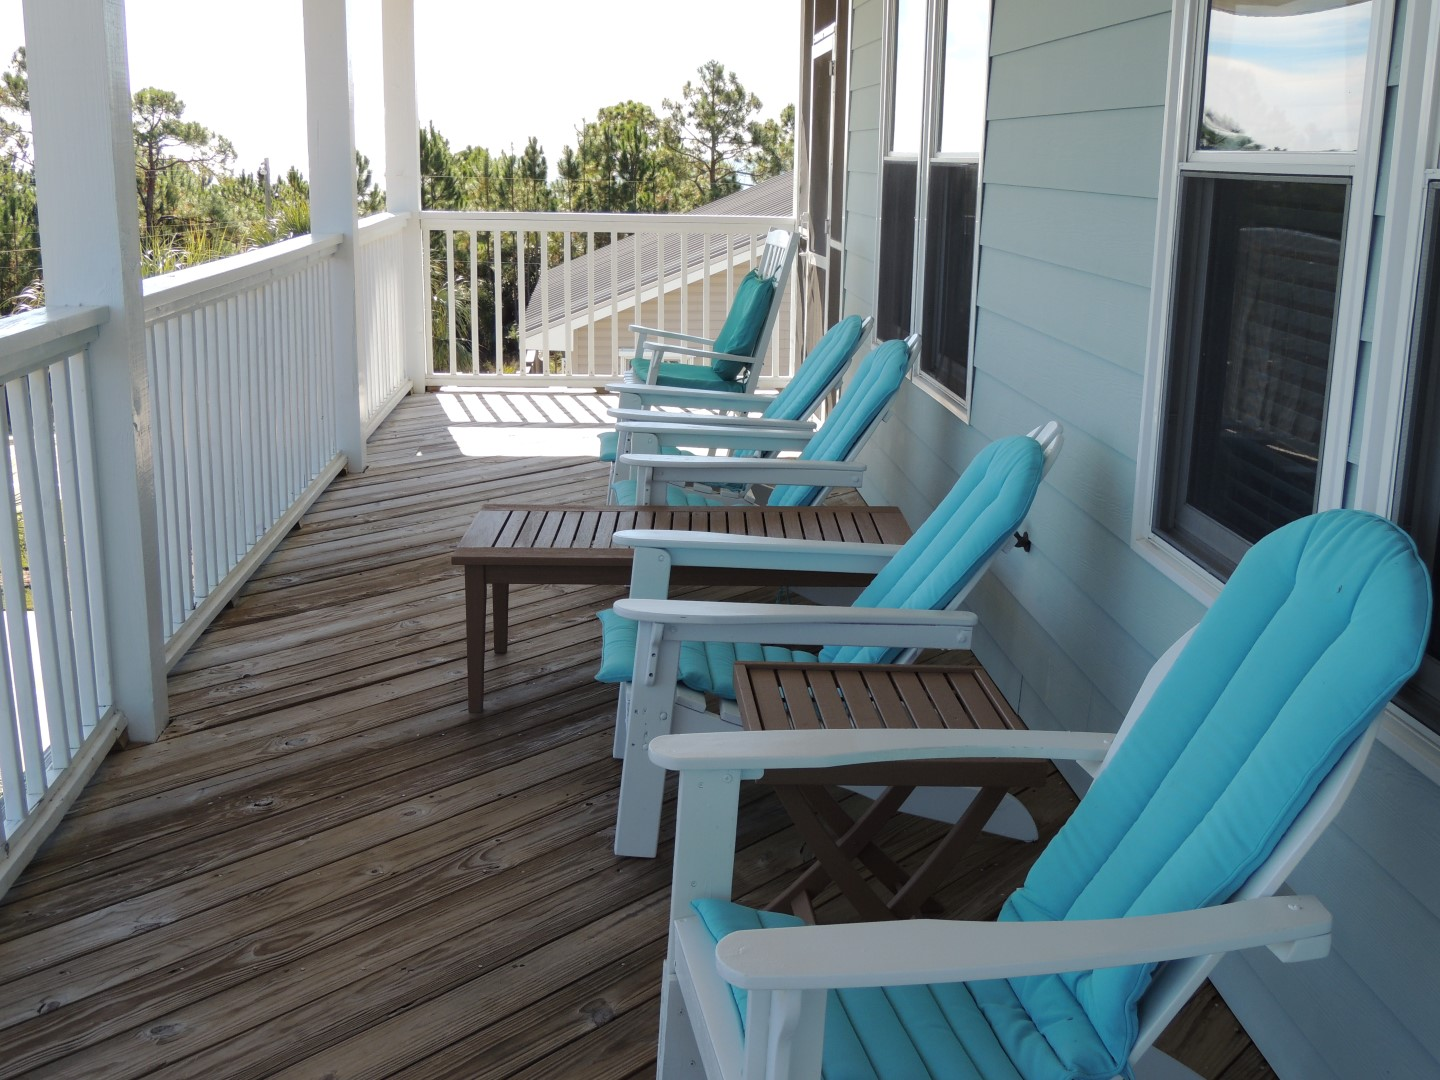 Three Palms -Top Floor- Deck- Unobstructed View of Beach and Gulf of Mexico-10